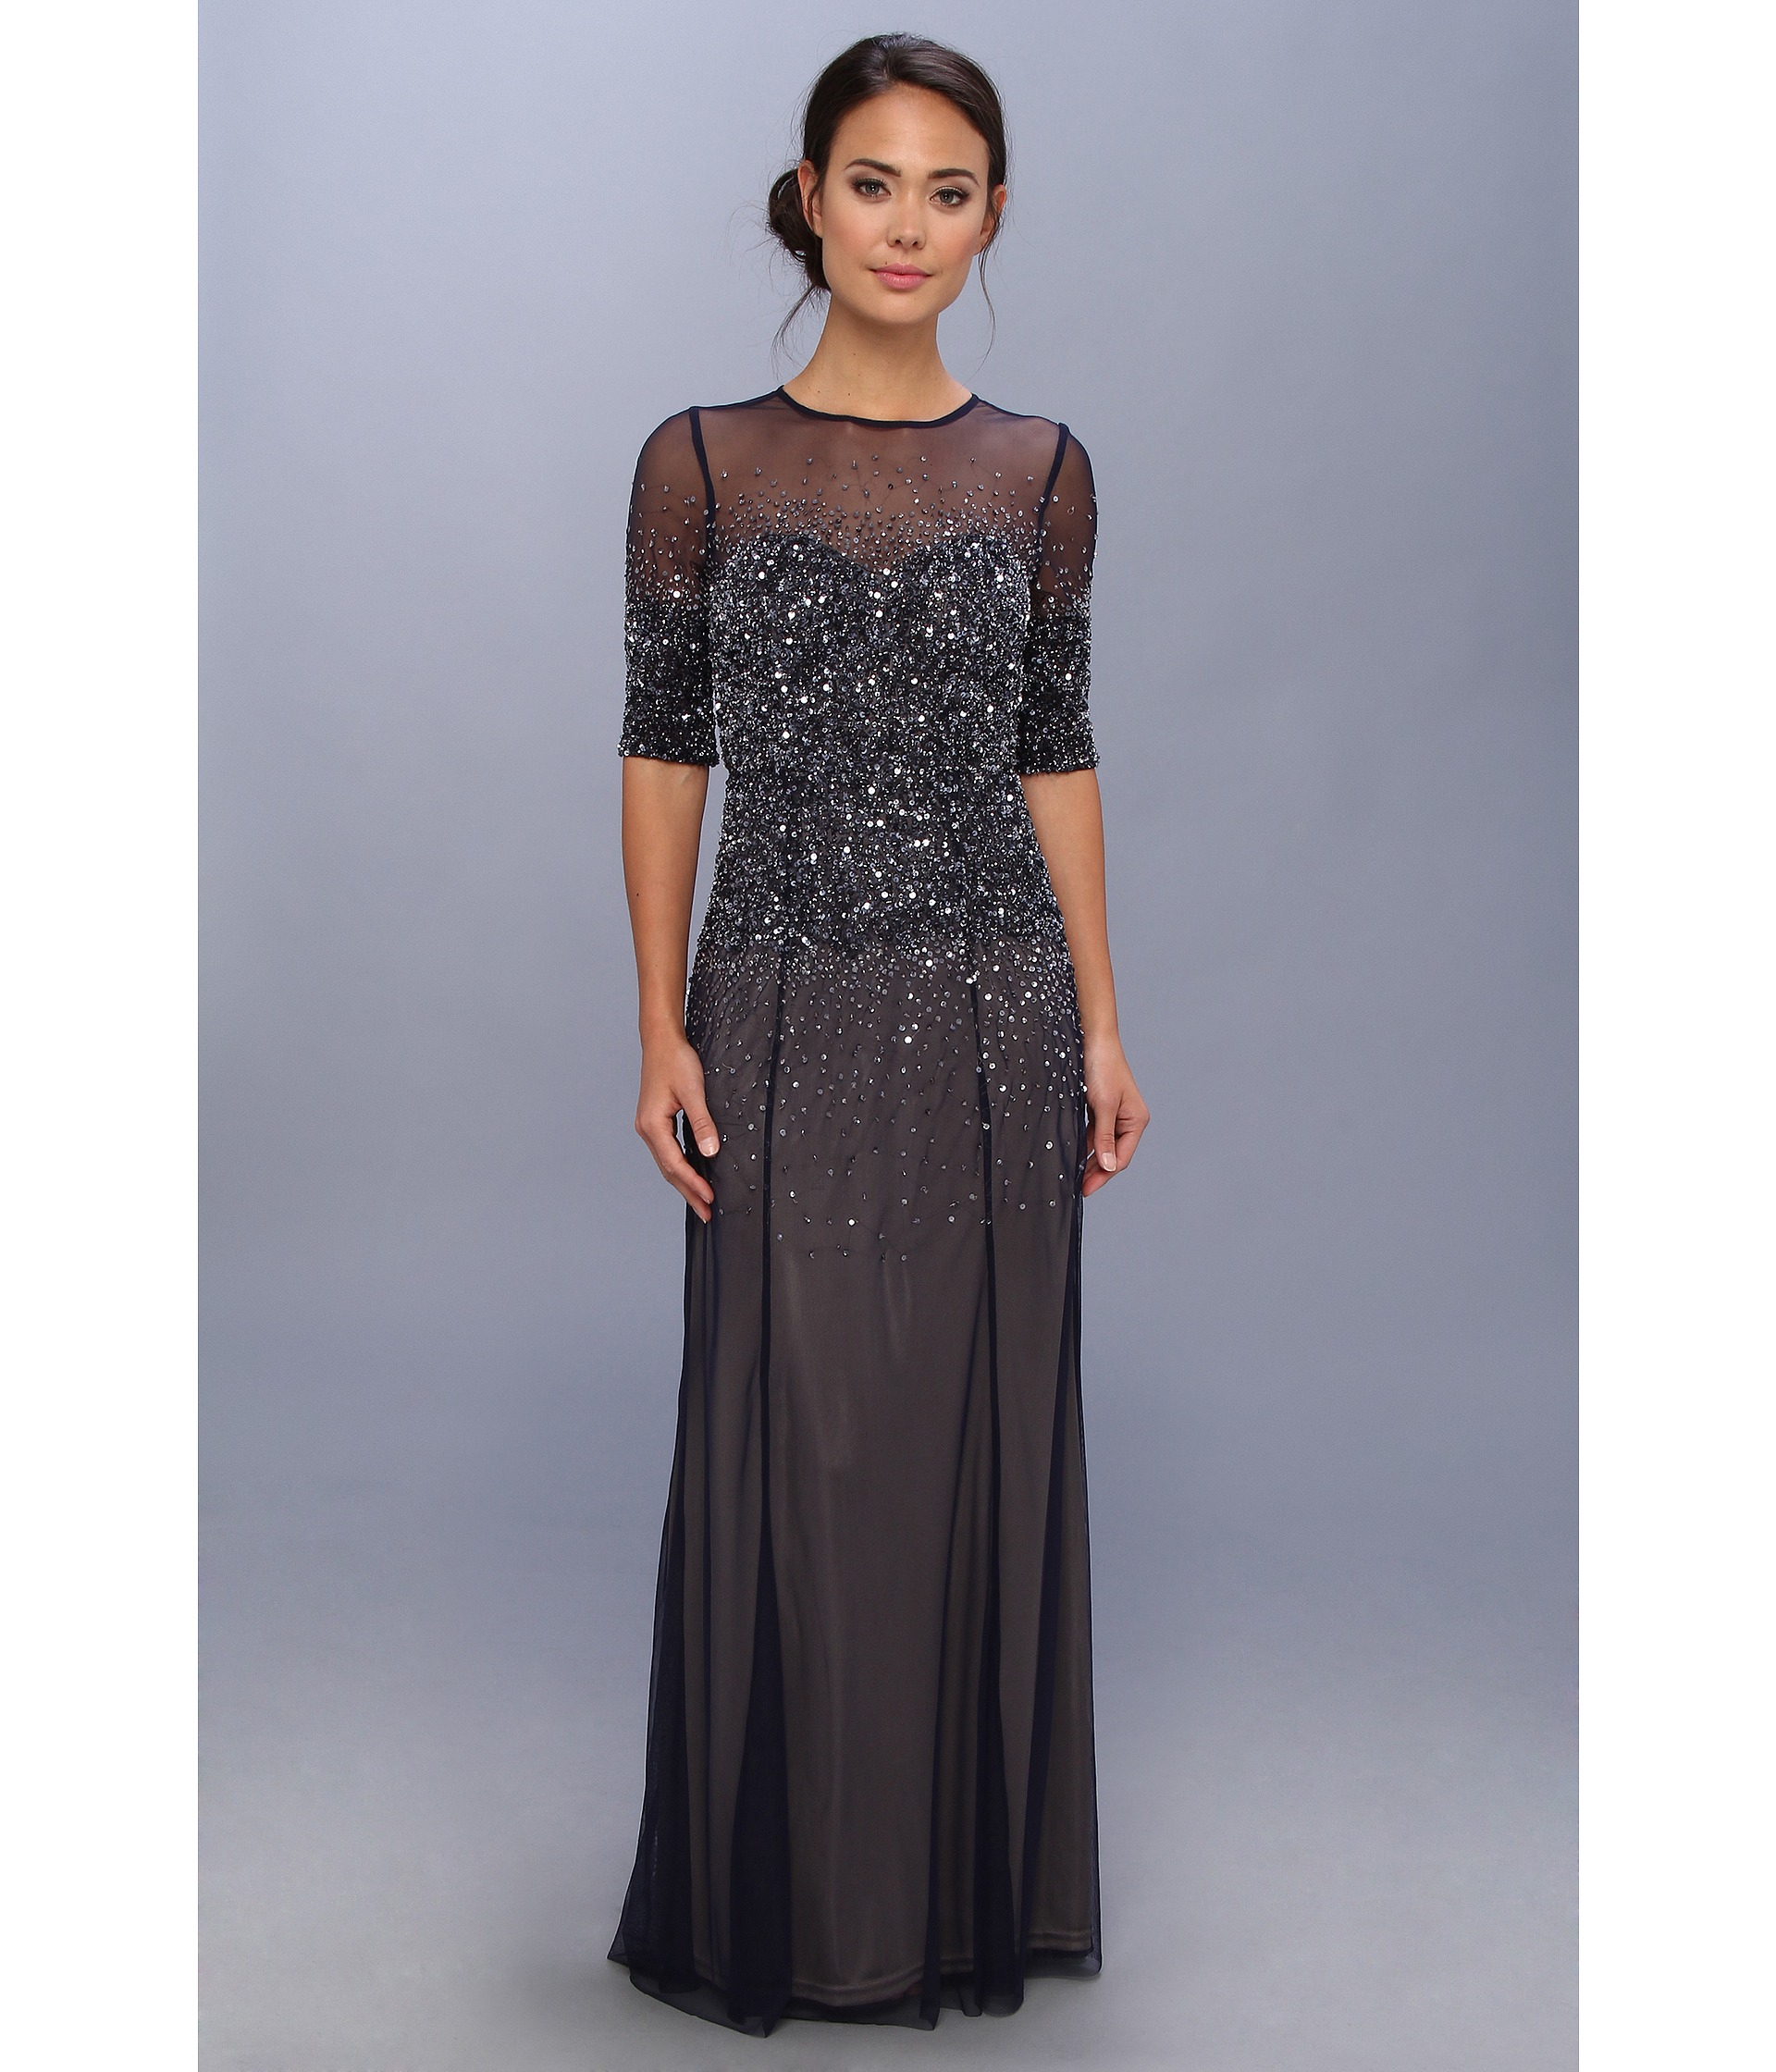 c6db6ab6b5f2 Adrianna Papell 3/4 Sleeve Illusion Yoke Beaded Gown in Blue - Lyst